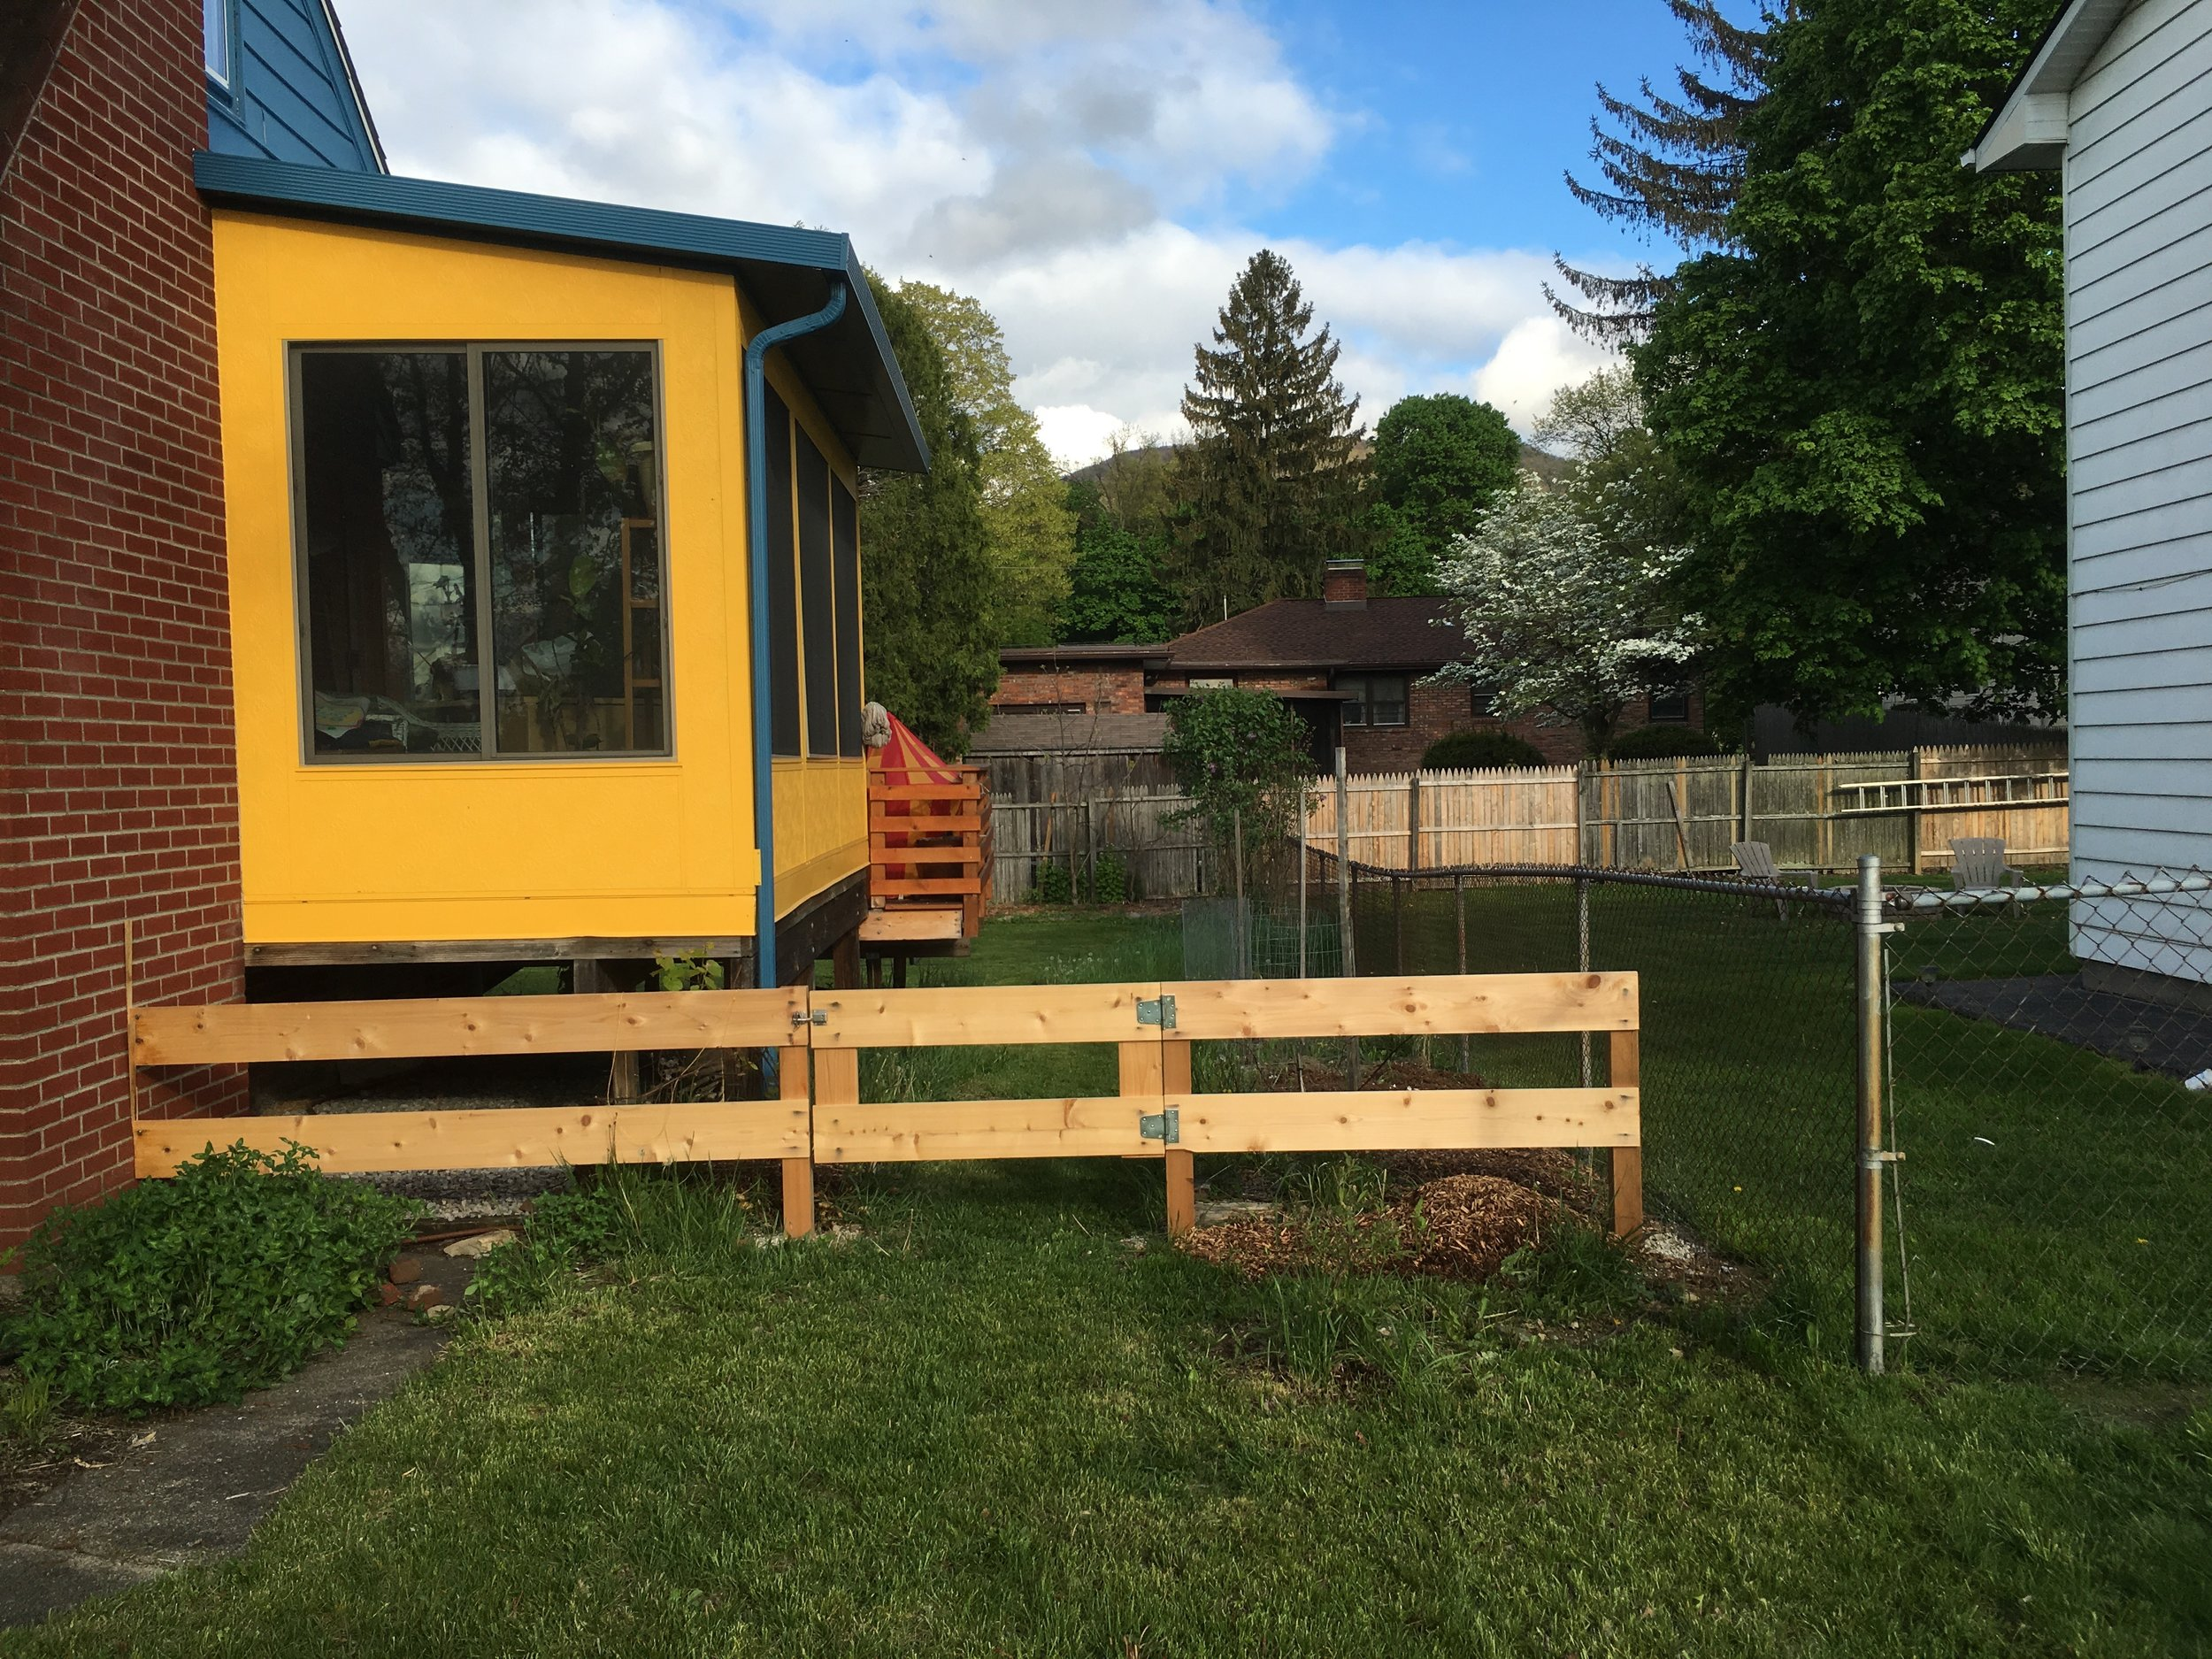 2015 - Entry to Paw Paw Alley